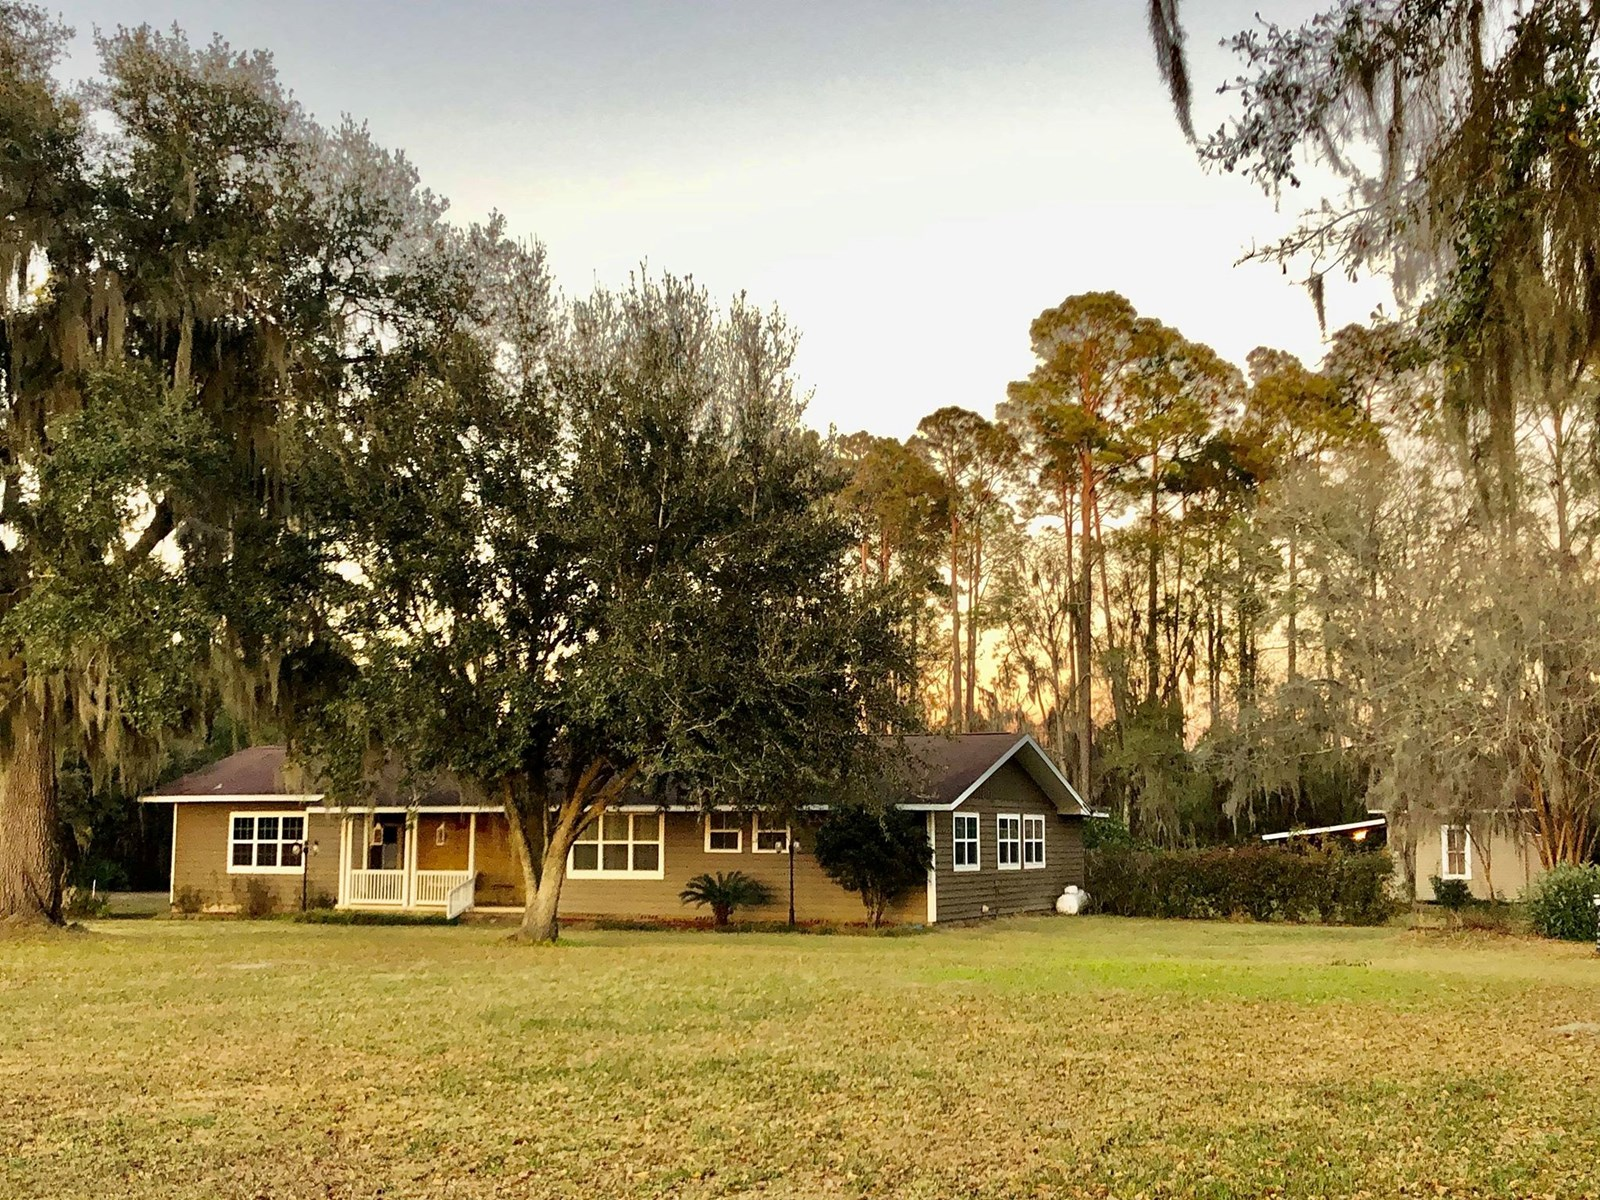 CHARMING 3/2 Home on 1.5 Acres in Jasper, FL!